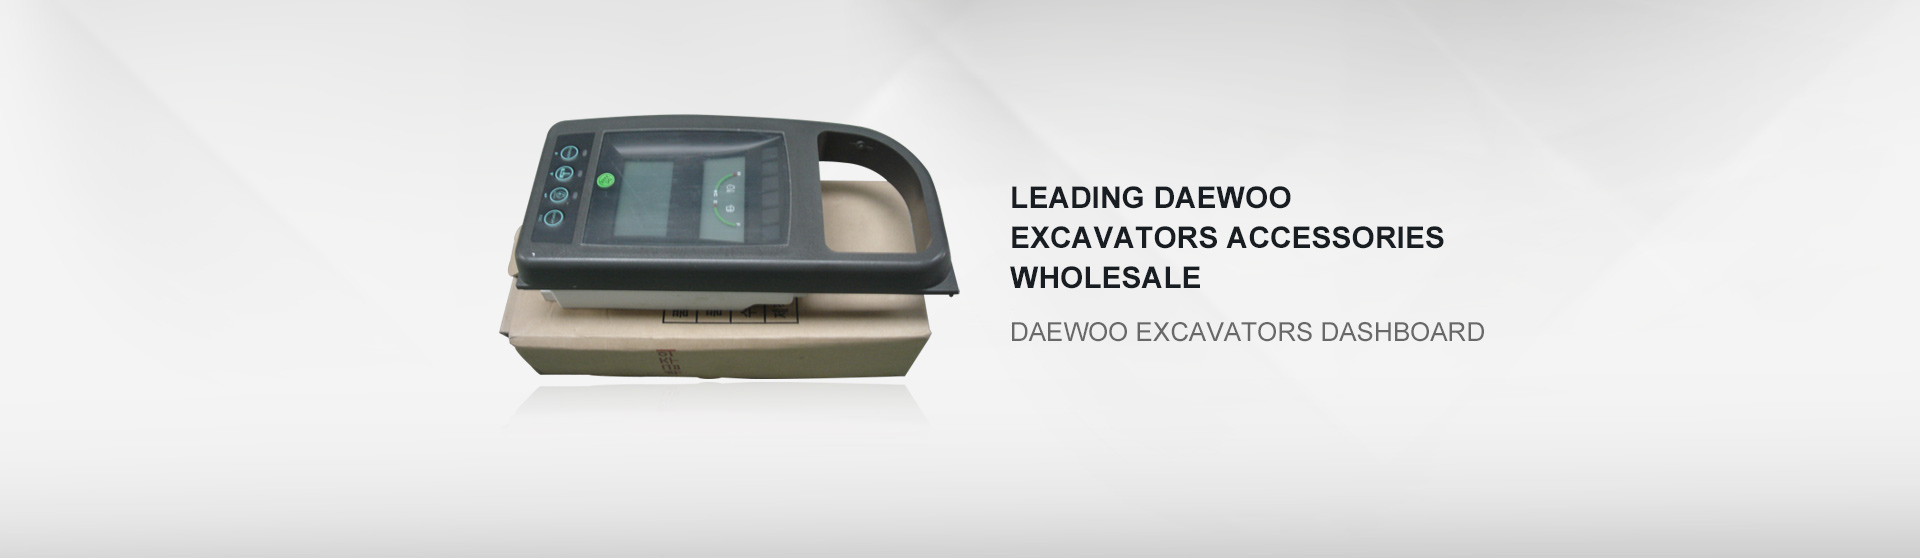 Daewoo excavators dashboard